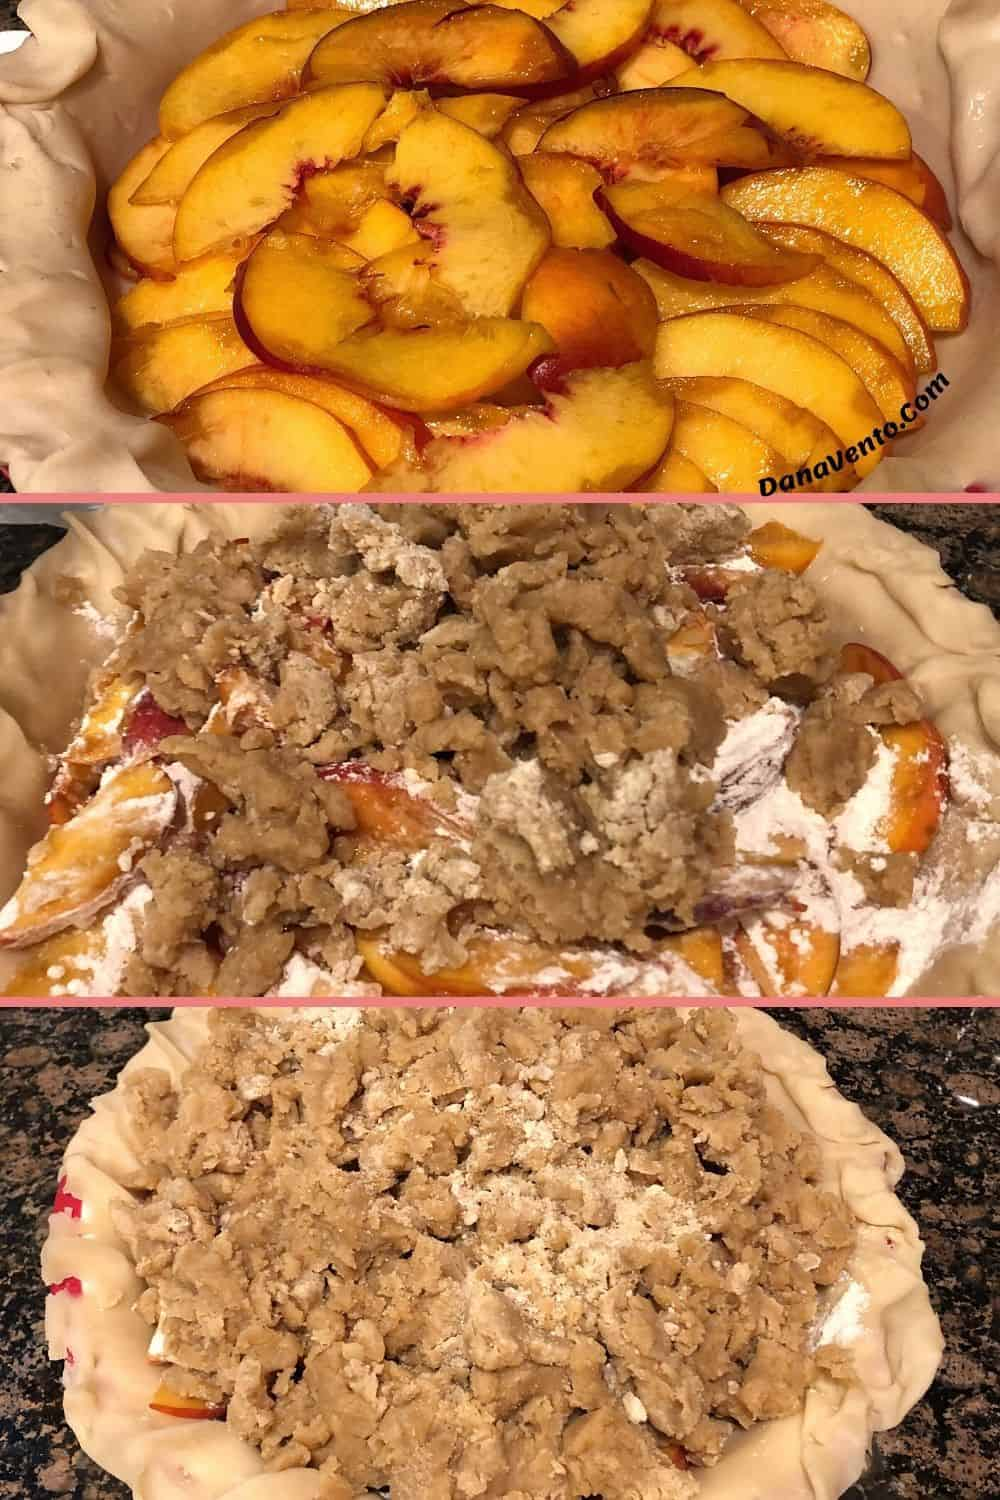 dutch crumb peach pie from pie crust with peaches to topping